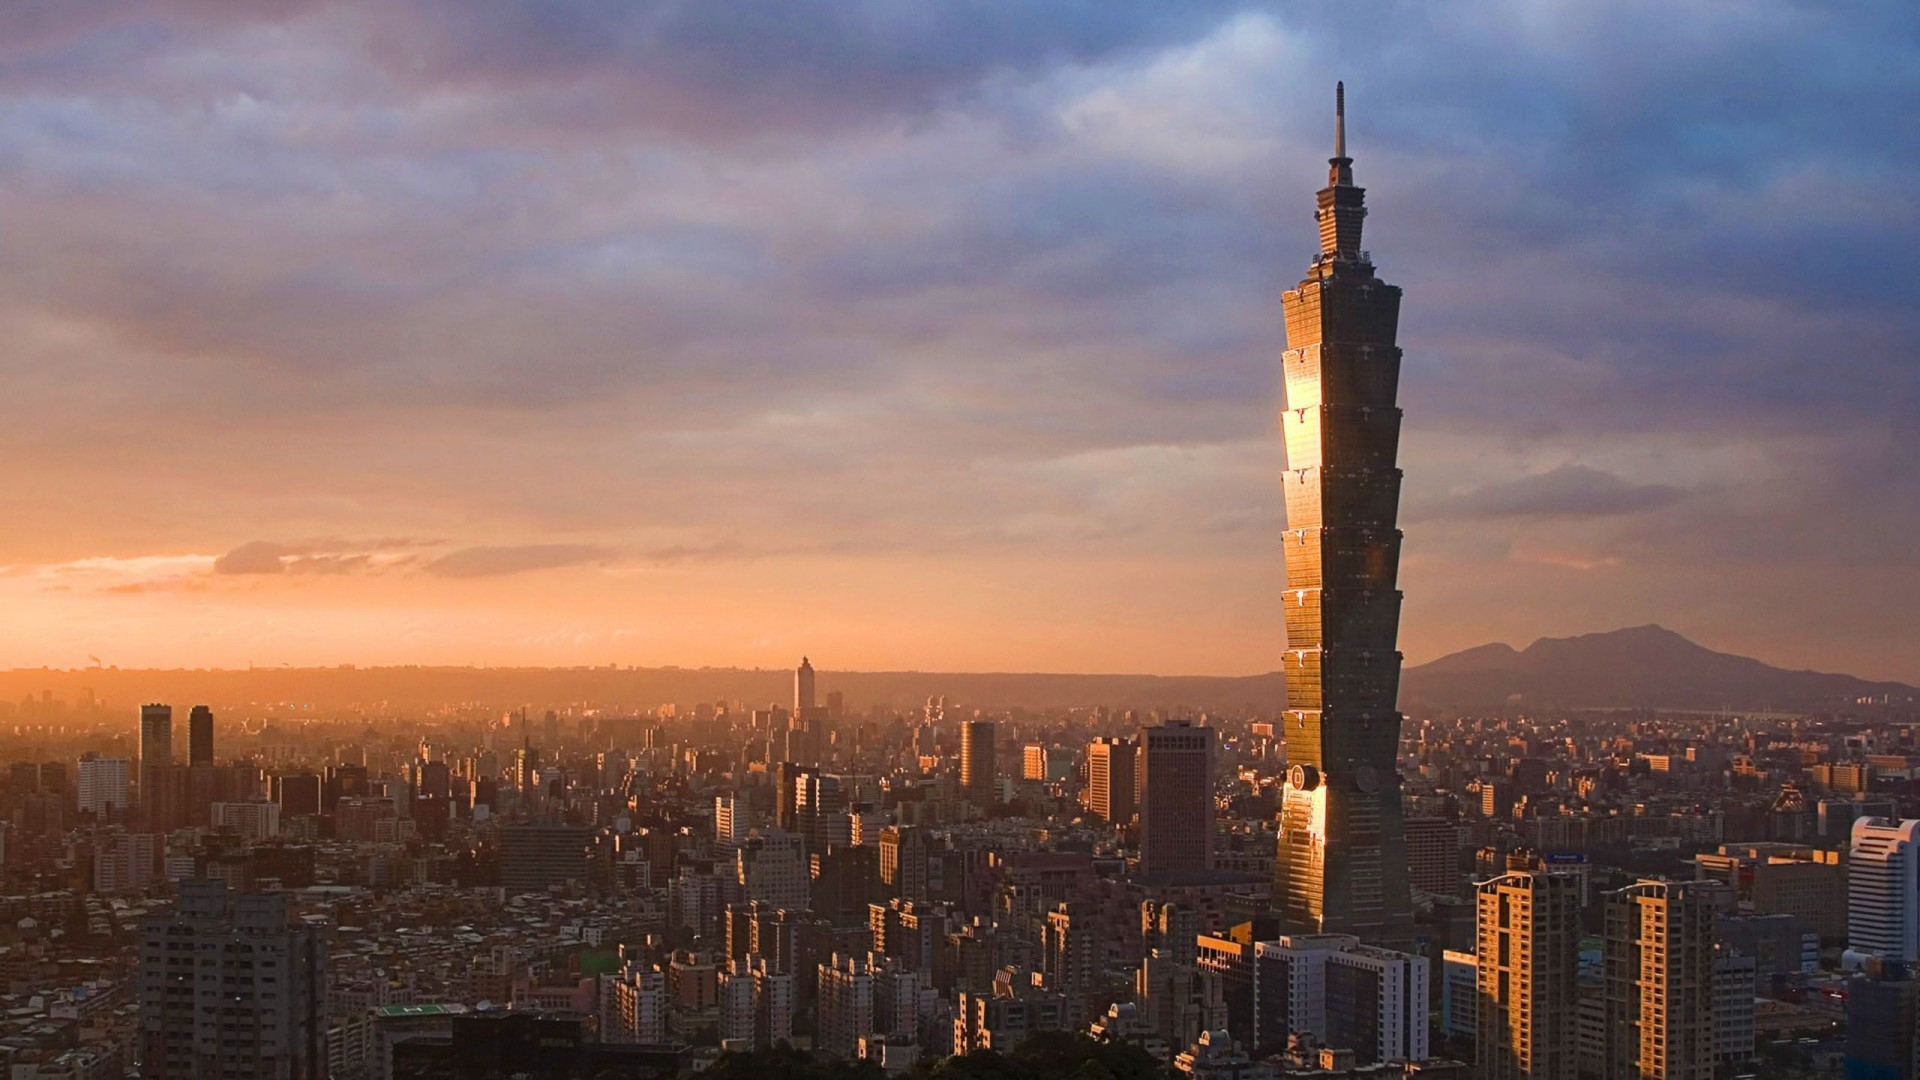 click to free download the wallpaper--Taipei 101 Photography Album 1920X1080 free wallpaper download